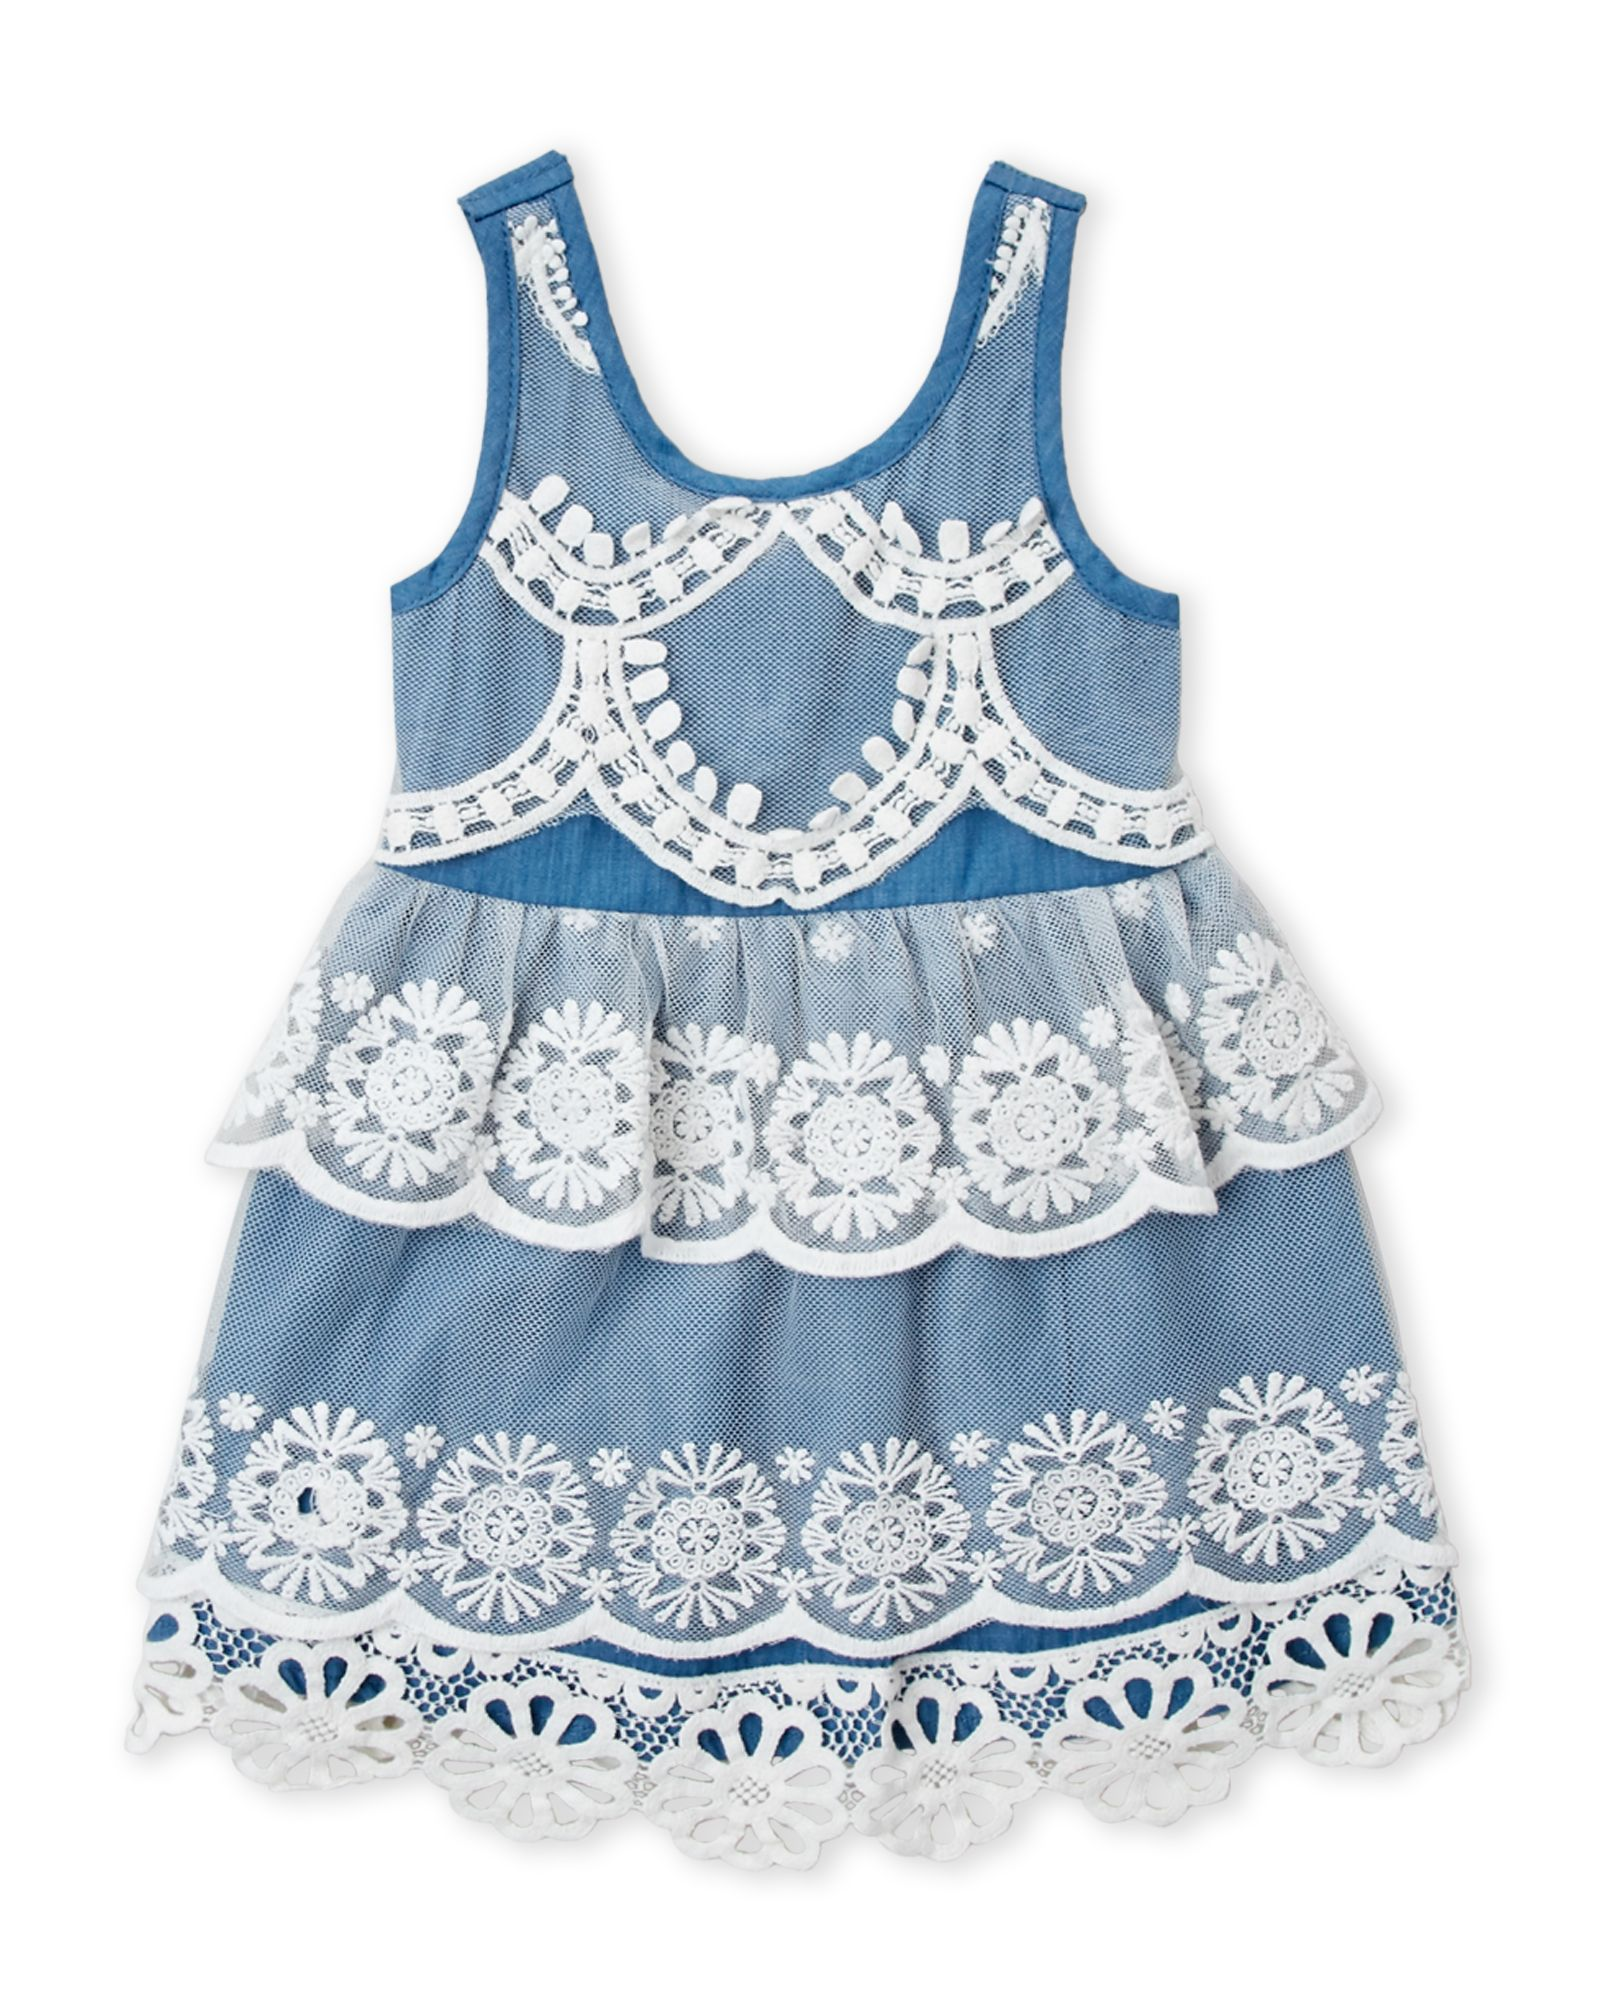 Baby Sara Infant Girls Lace Chambray Tier Dress